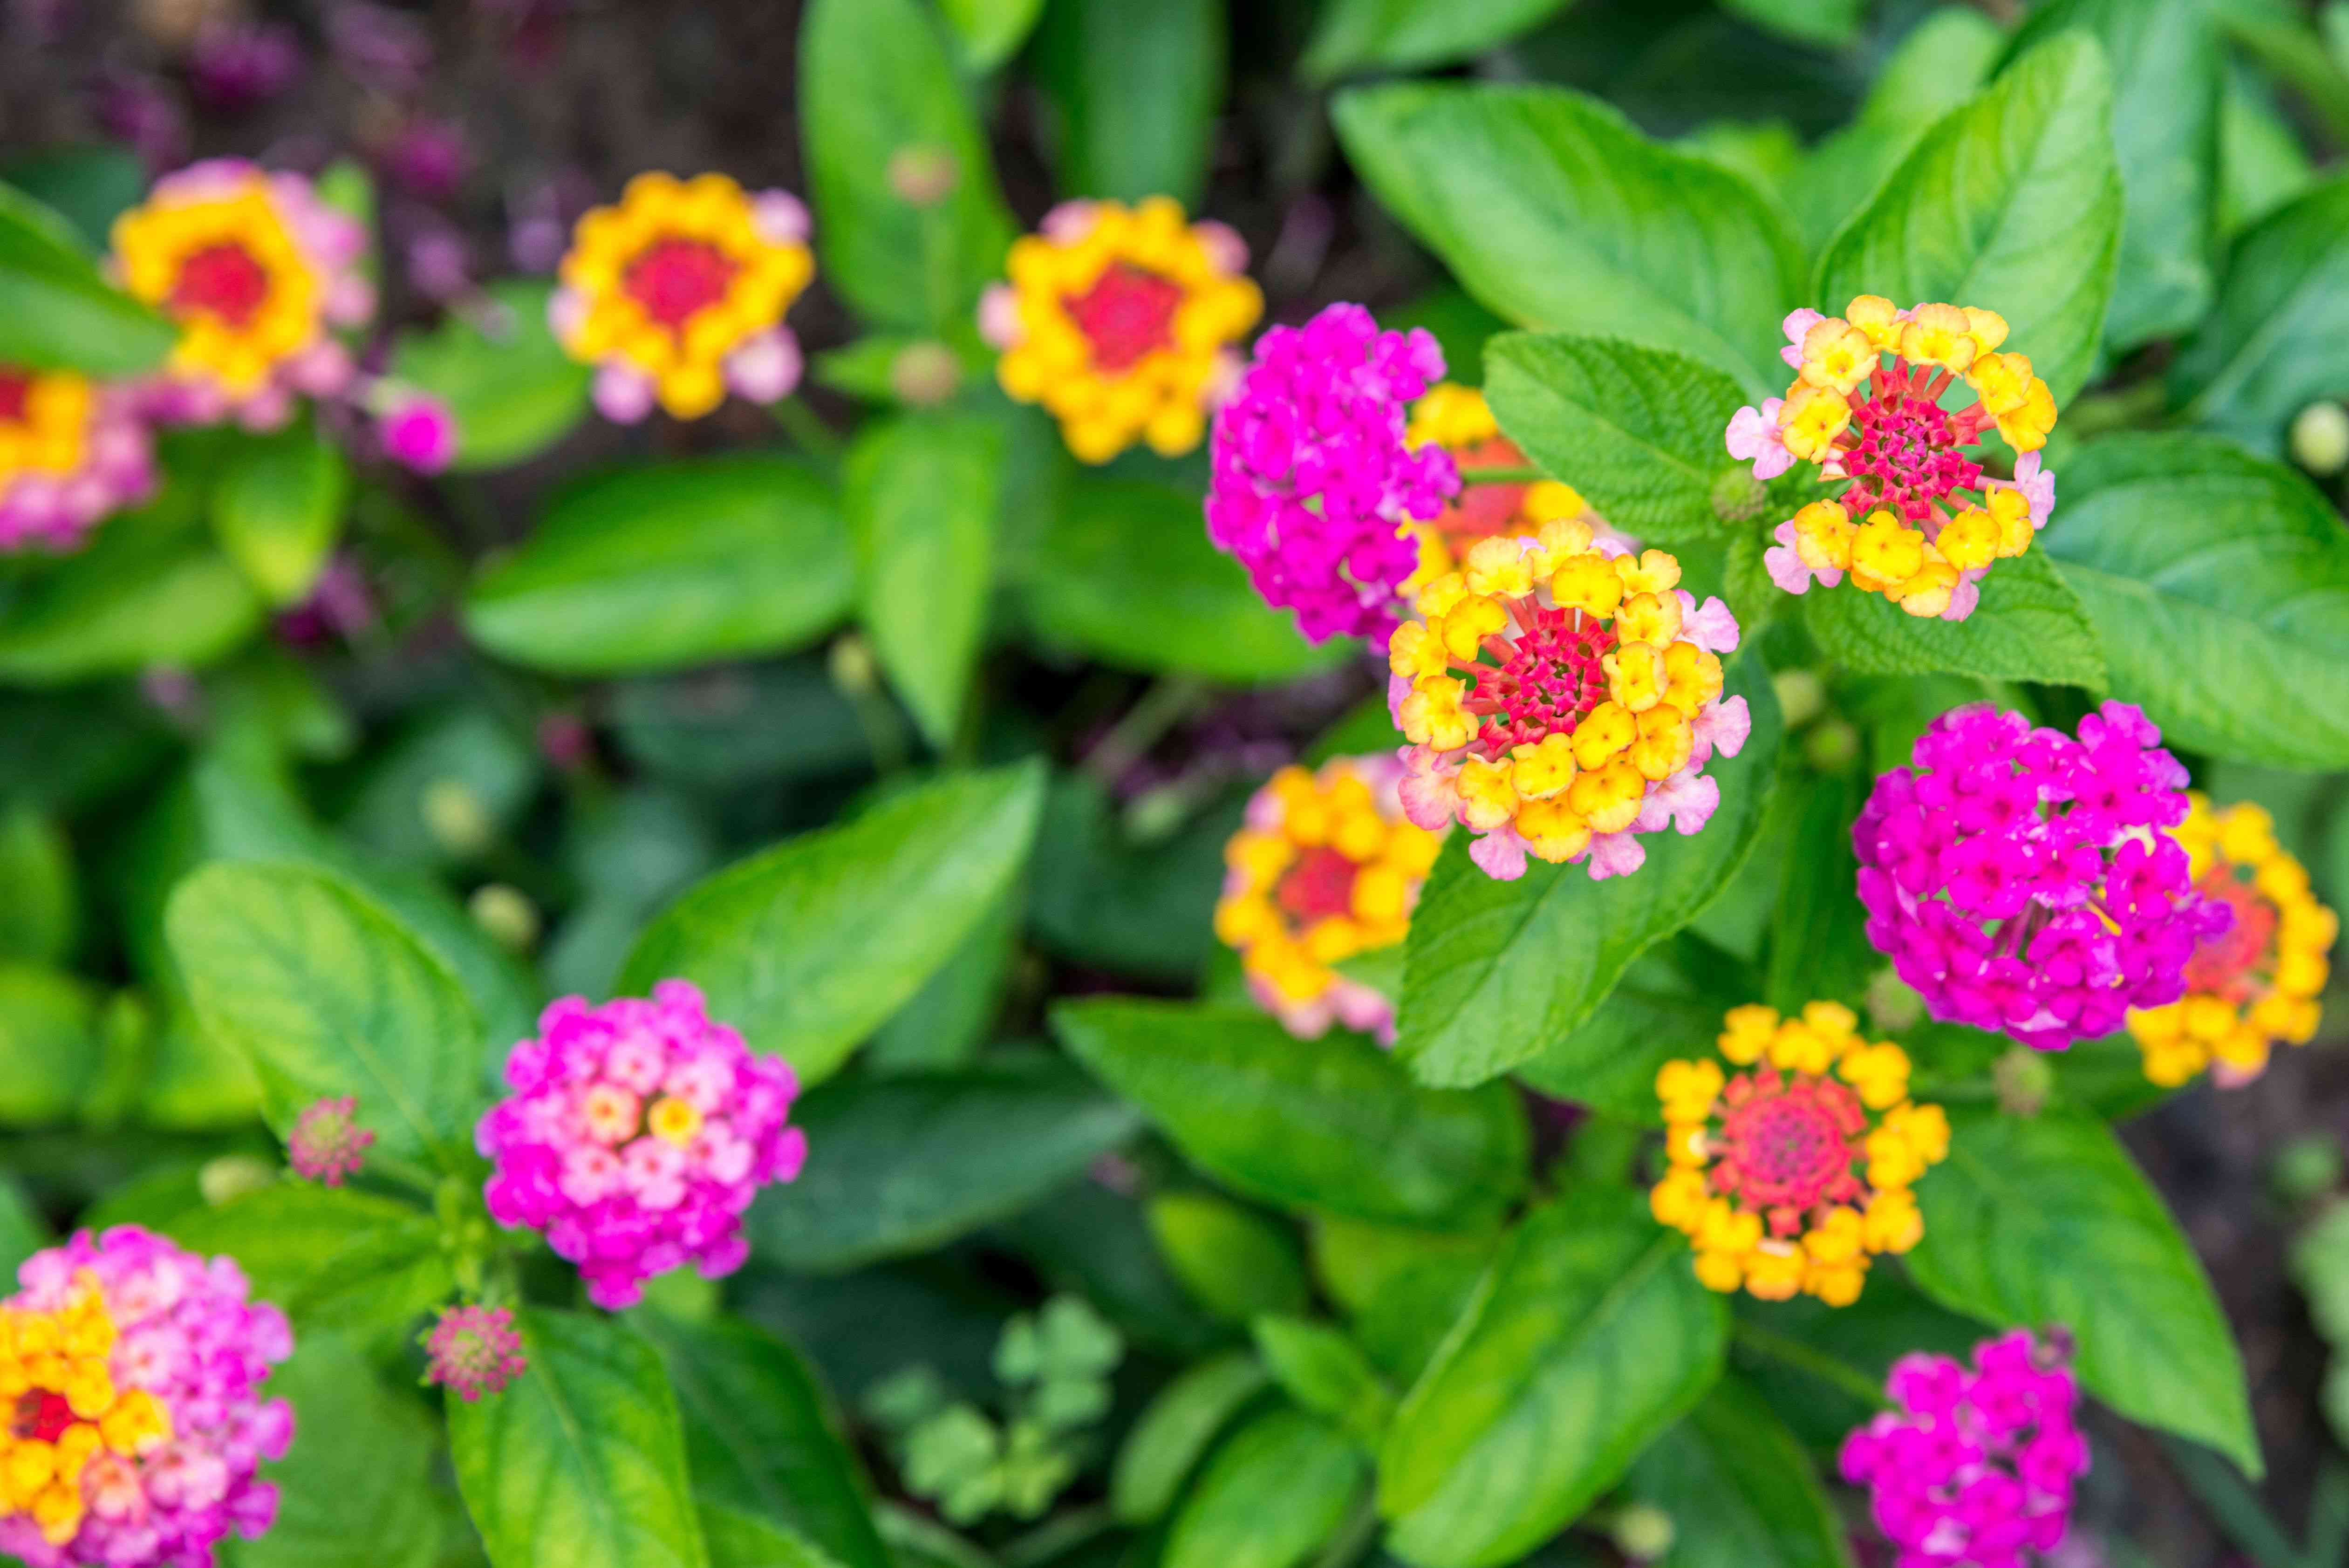 Lantana plant with tiny flower clusters with yellow, bright pink and red petals